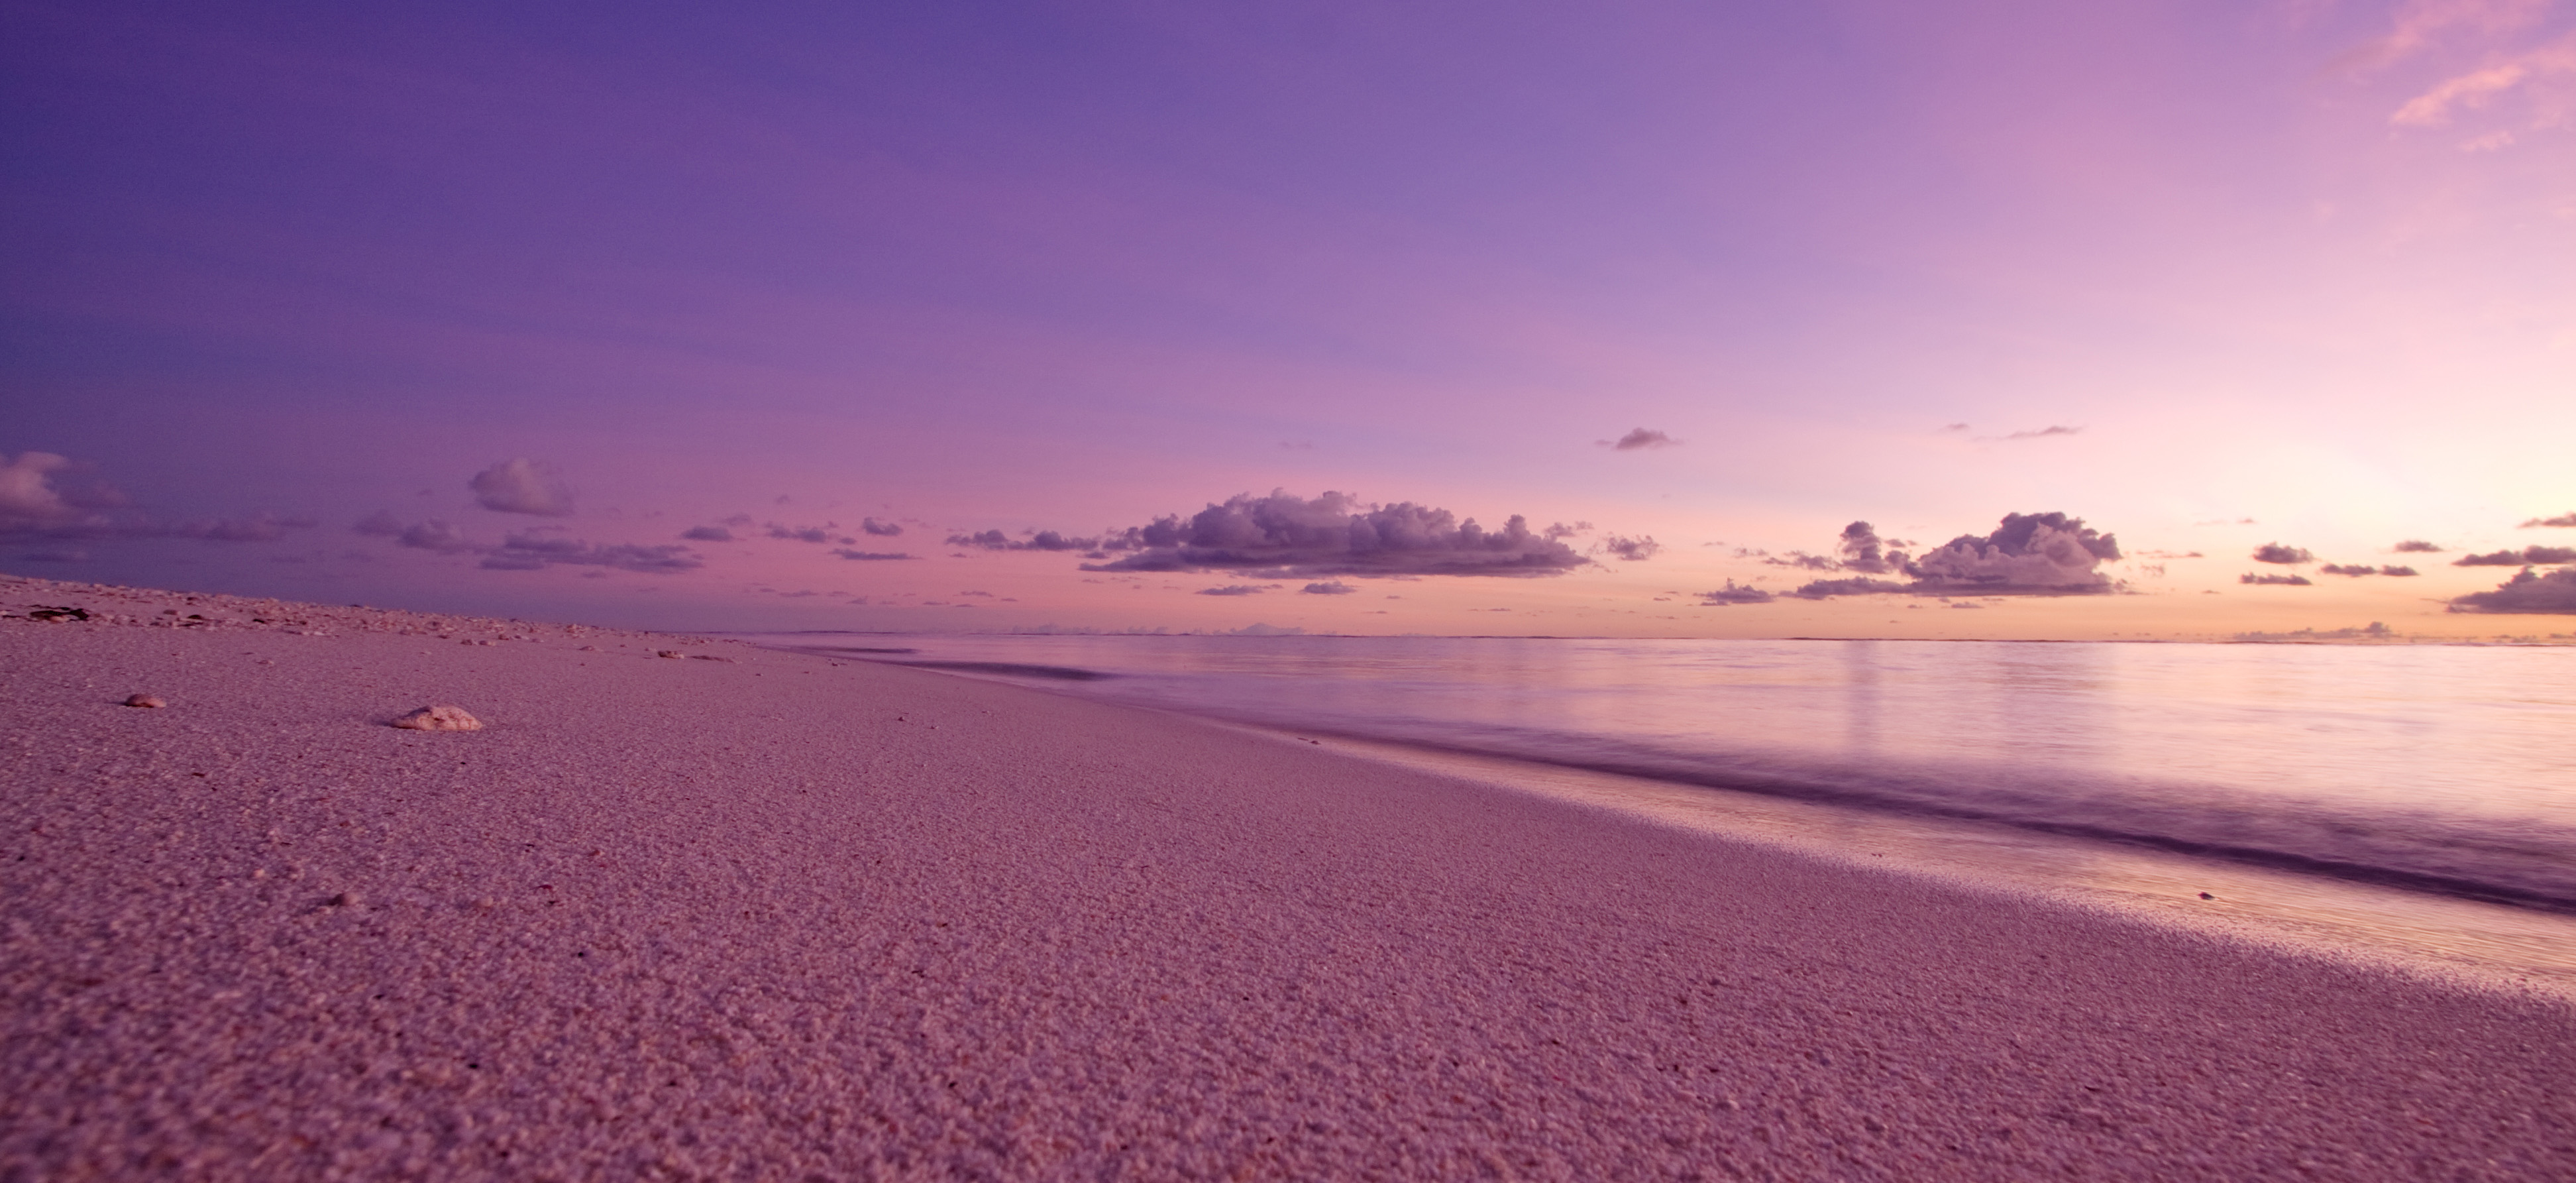 The 11 Most Stunning Places to Watch Sunsets in the Seychelles